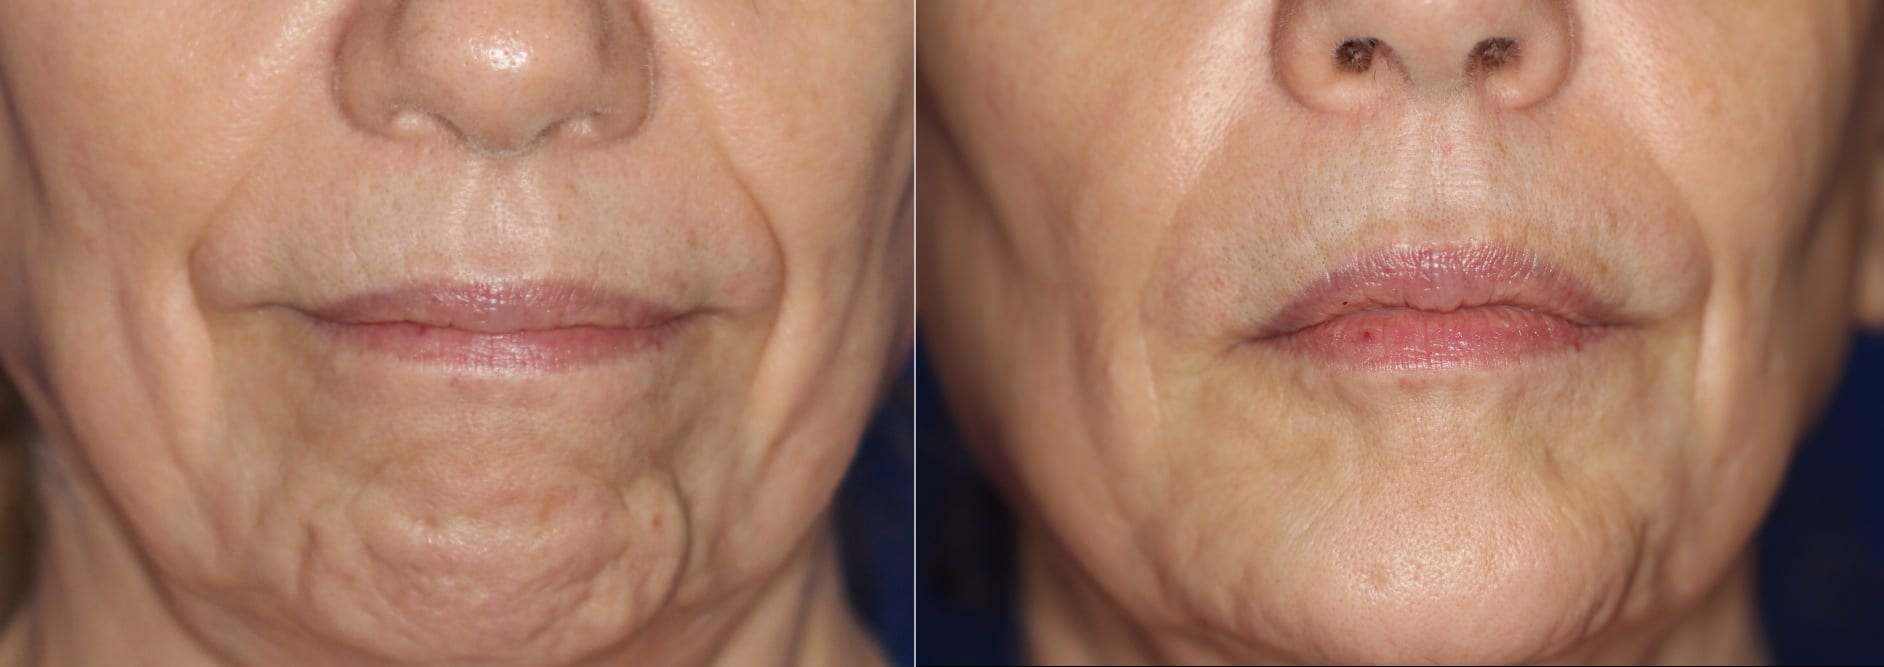 Botox can be used in the chin to smooth out dimpling in the skin